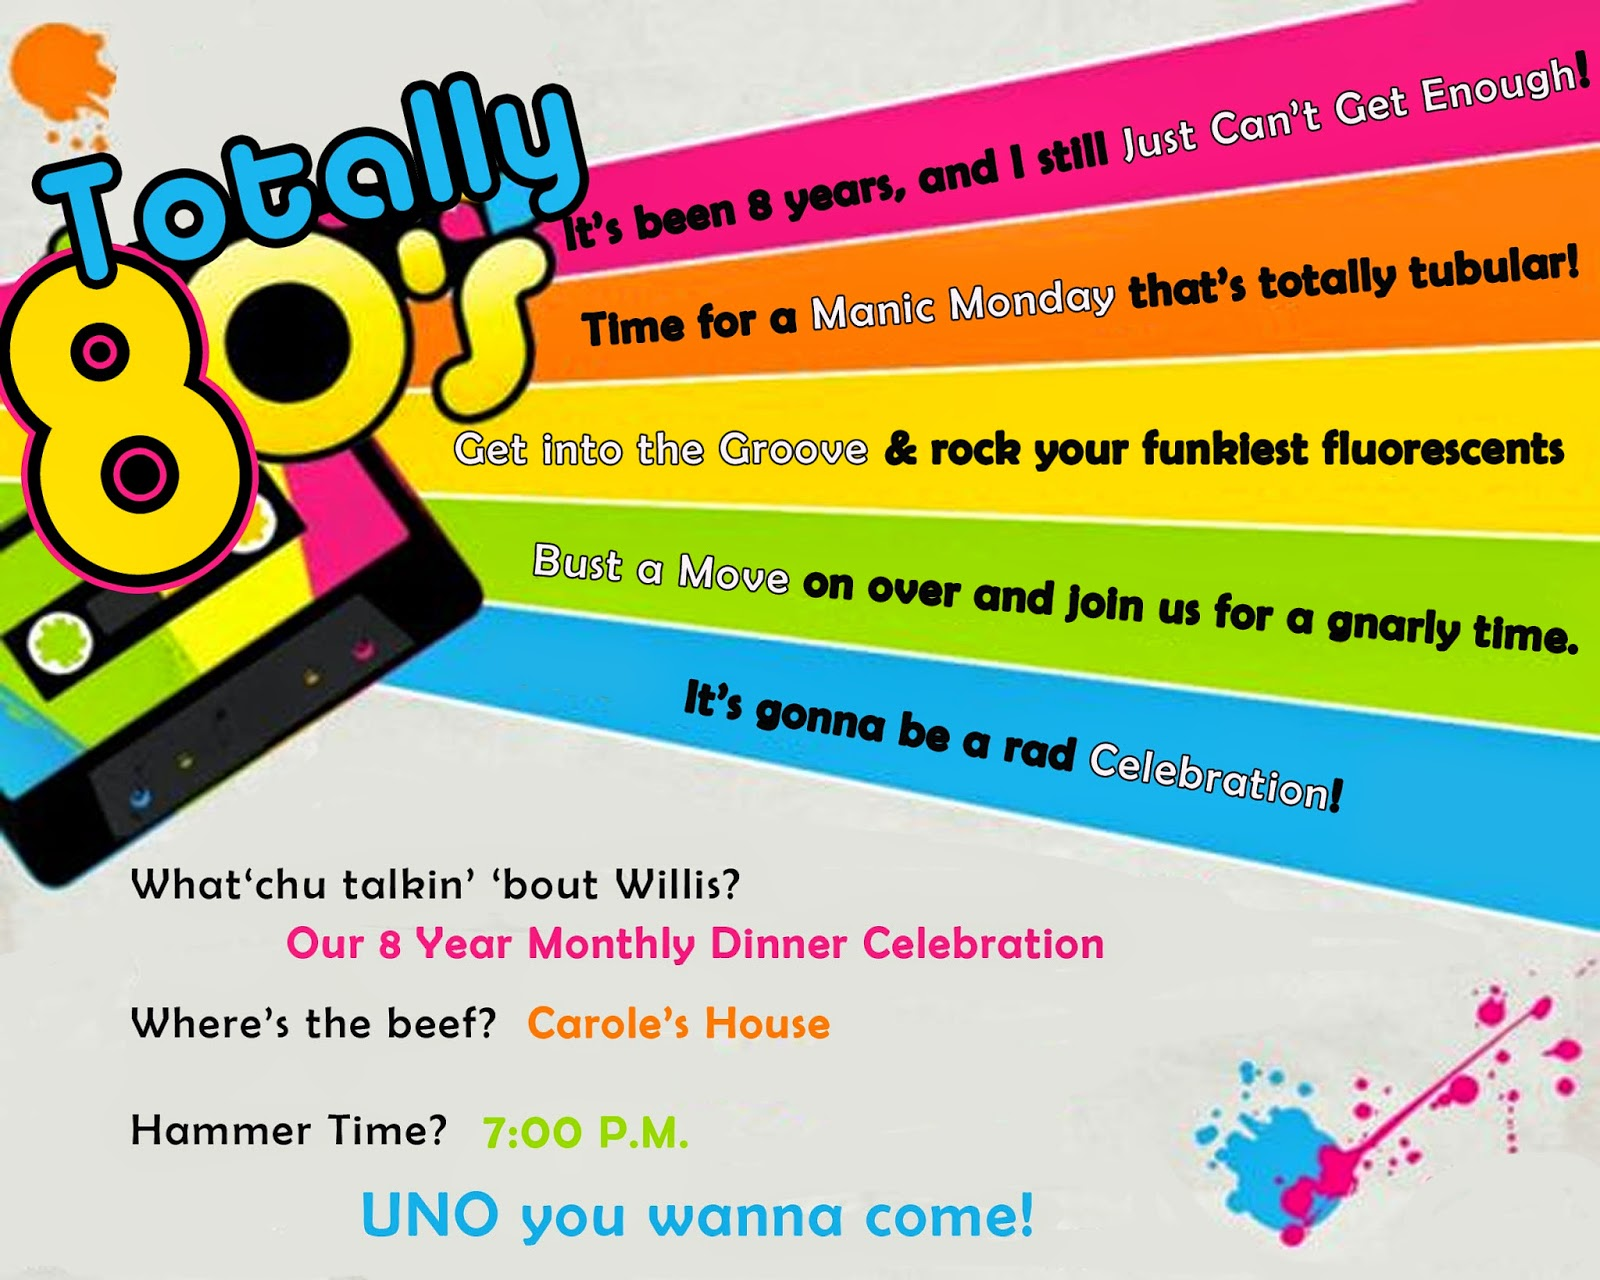 Invite and Delight Totally 80s Party – 80s Theme Party Invitations